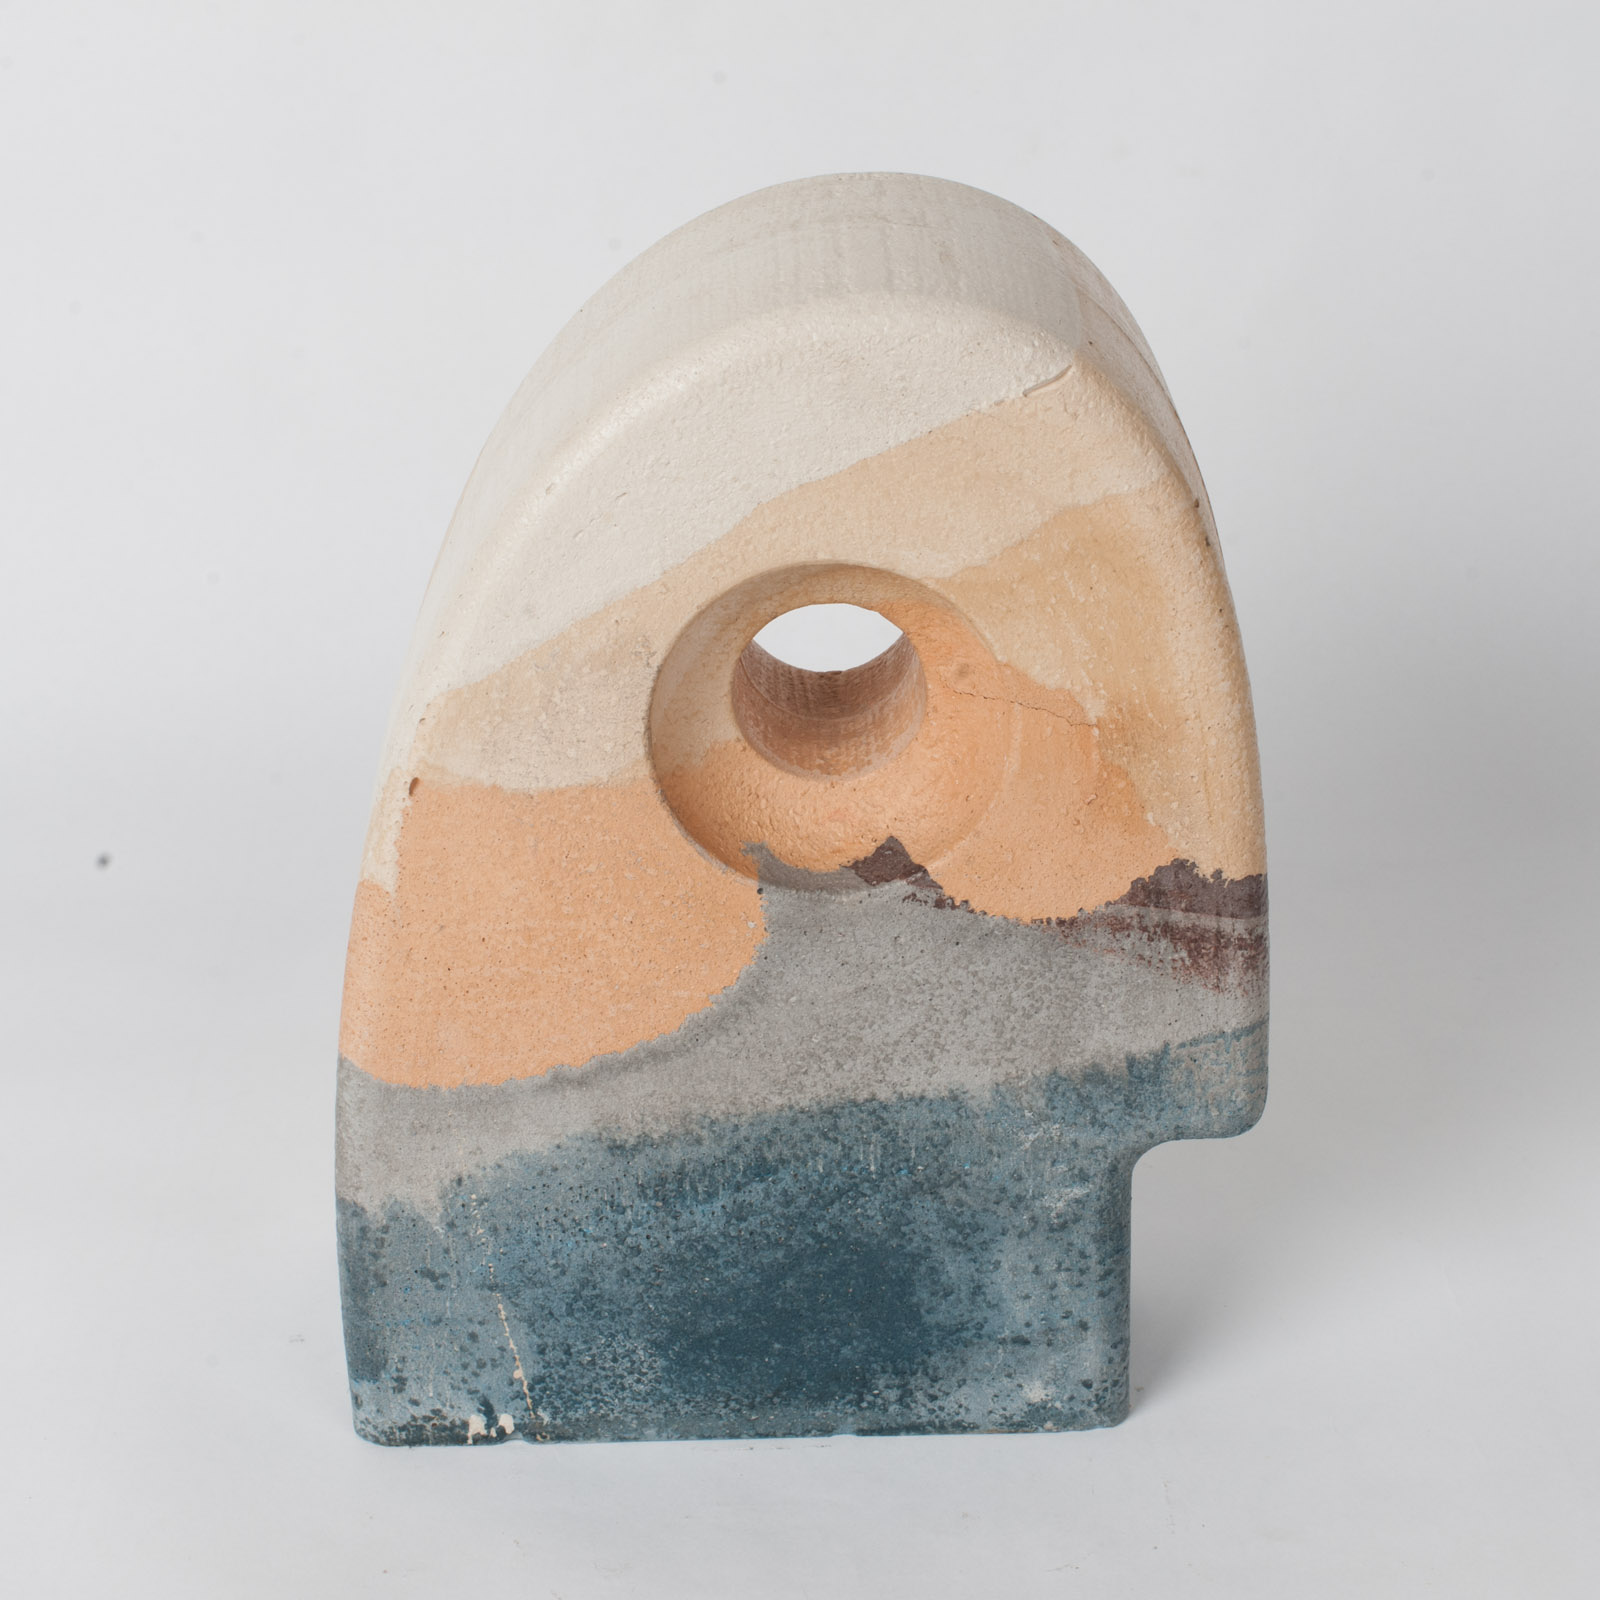 Budgie Sculpture In Apricot Concrete By Maddie Sharrock 10